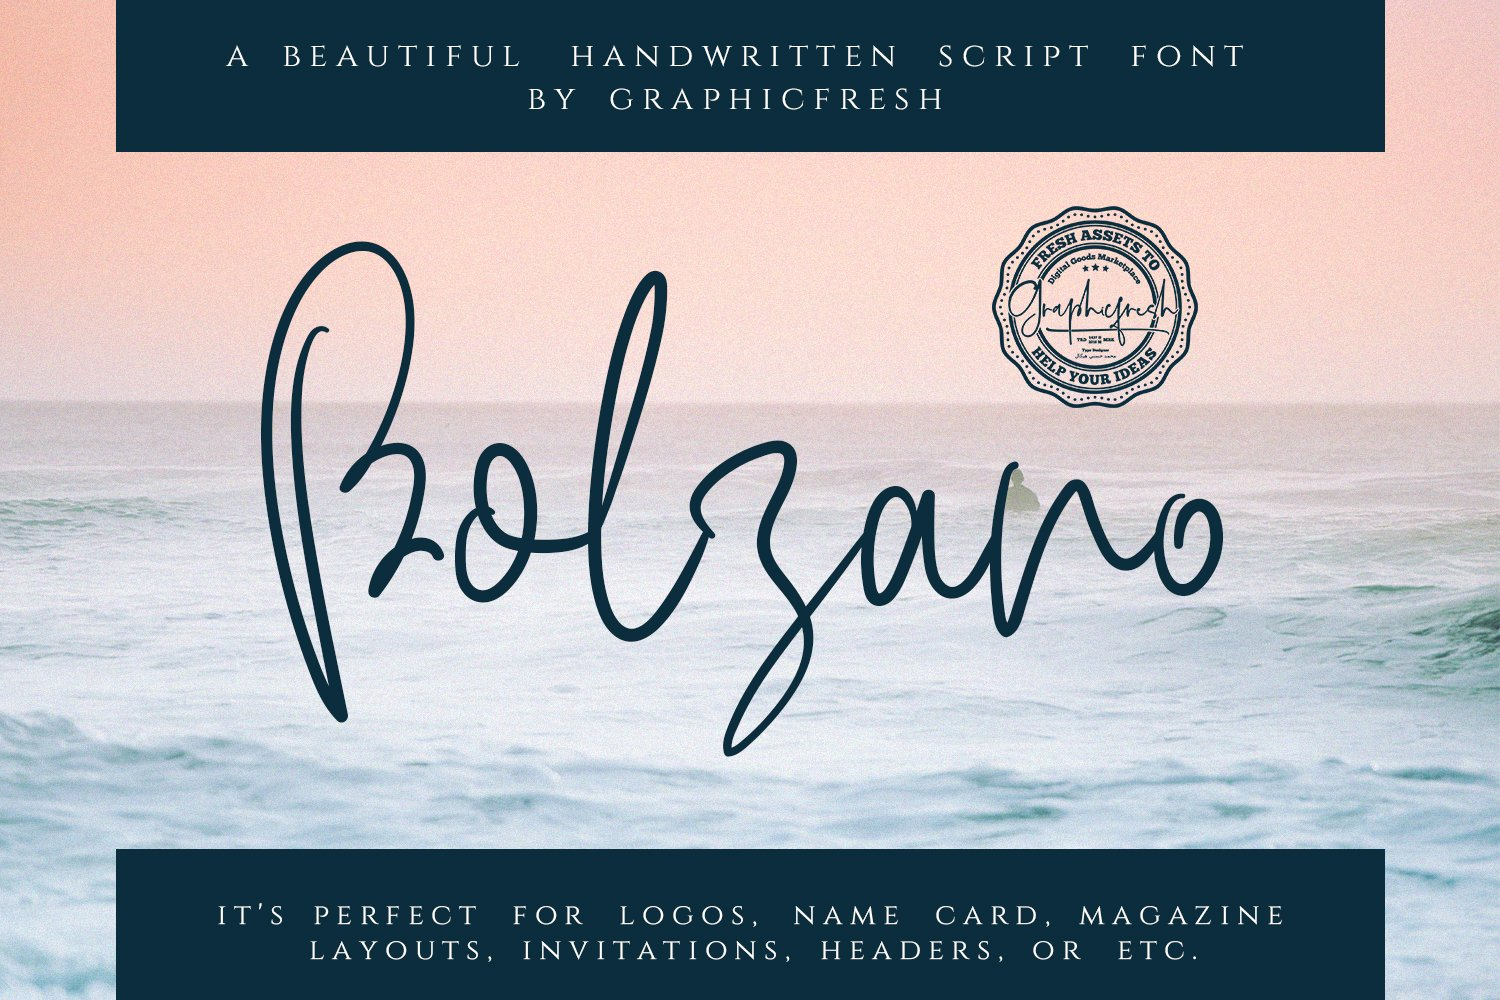 A free and light font with a sea breeze.